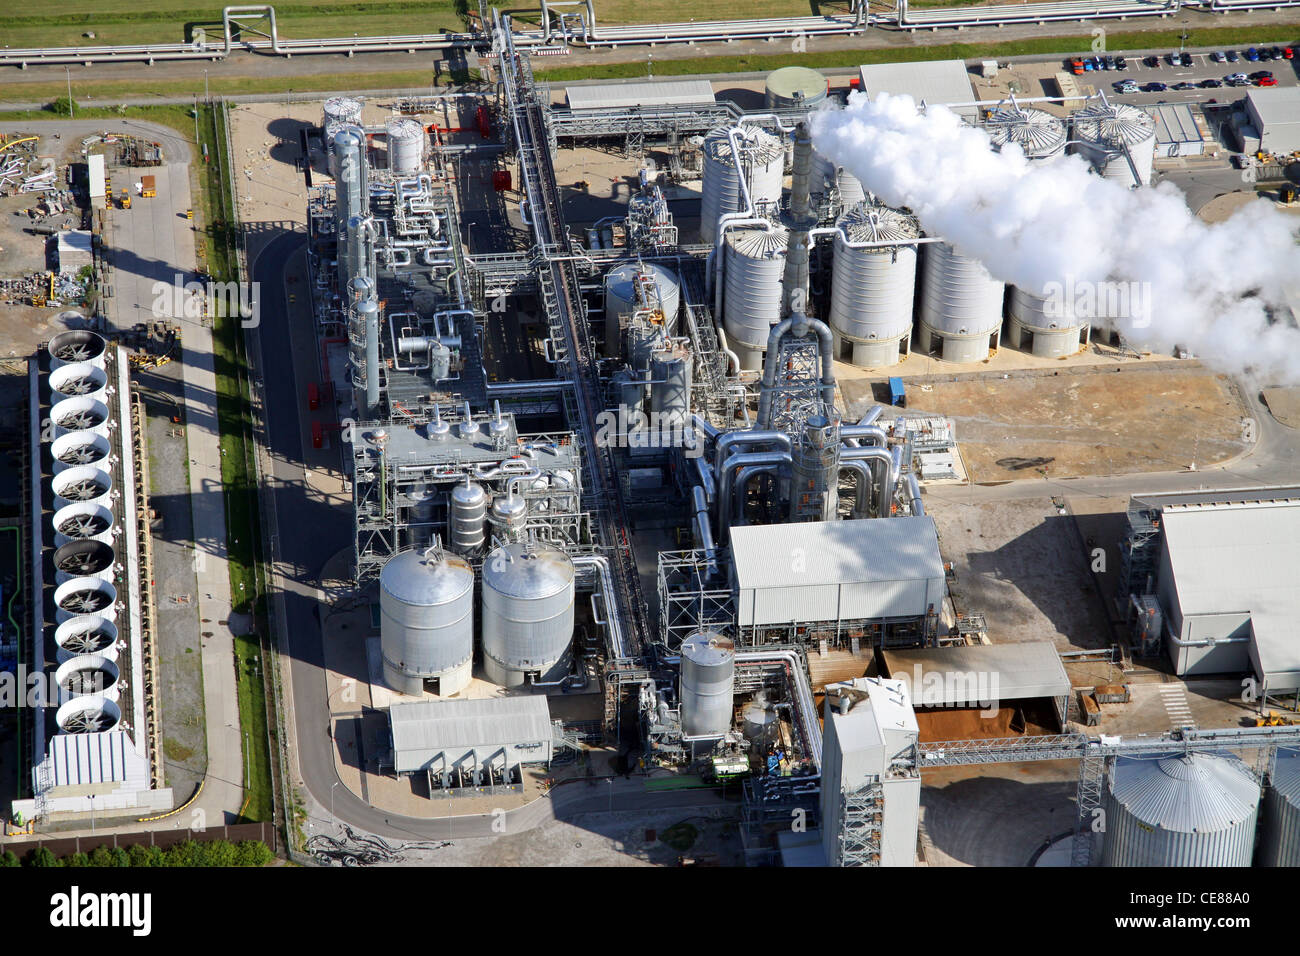 Aerial photograph of the Ensus chemical works at Wilton, Teesside - Stock Image